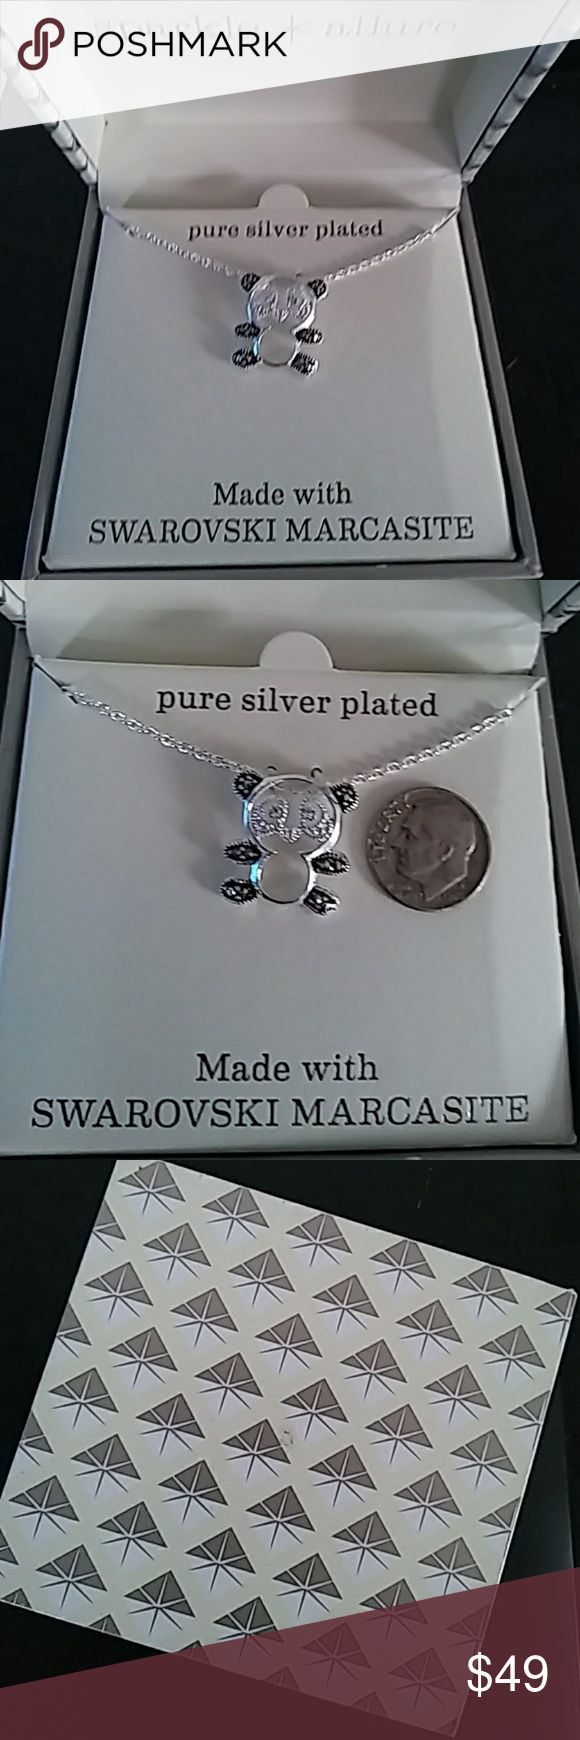 SWAROVSKI 💎🎅🆕 🎄MARCASITE Necklace 🎁 CUTE New with tags and original case box SWAROVSKI 💎 MARCASITE silver plate necklace - Exquisite and delicate - As shown  🎄GREAT AS GIFT 🎅open to offers - trough offer link only please  MARKDOWN 🔻 reg $60 🔻 ONLY 3 DAYS    FIND ME 🔍 @fashionlulys  #panda#pendant#chain#present#gift#sale#vintage marcasite style lovers#set#markdown#clearance#marquesitas#plata#oso#osito jcpenney Jewelry